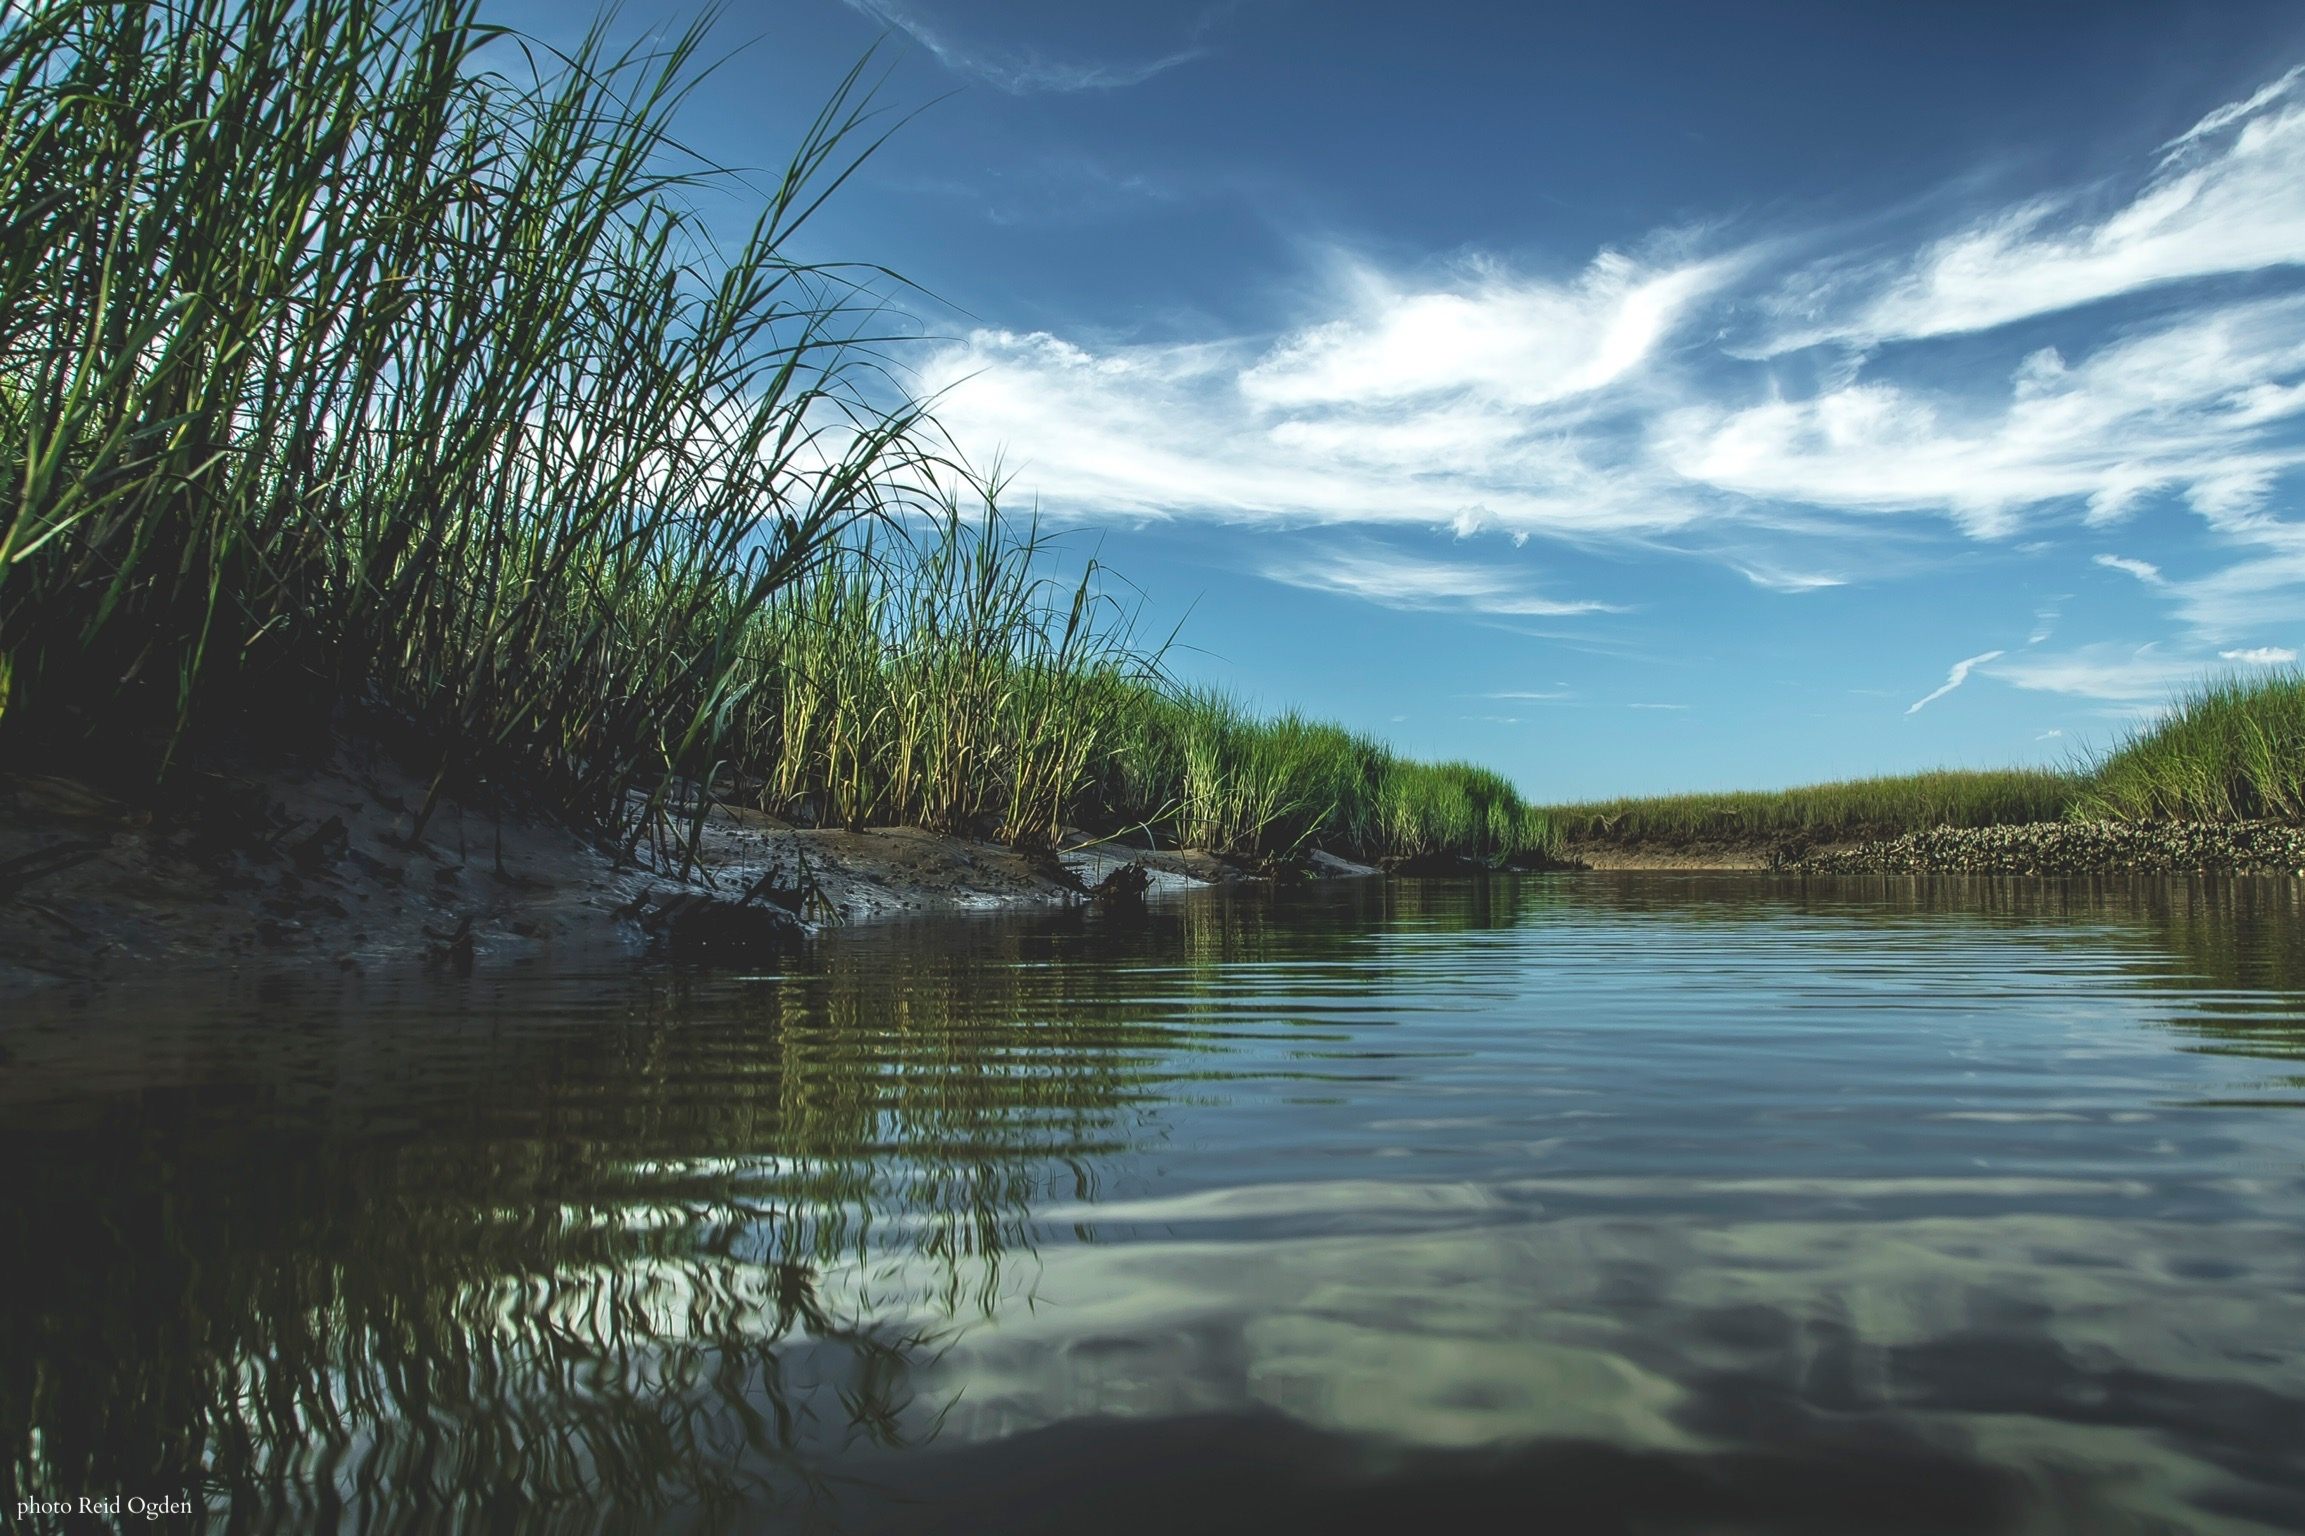 Professionally guided fly fishing adventures in the Charleston, SC region. We specialize in sight fishing for redfish covering an array of inshore habitats.  -